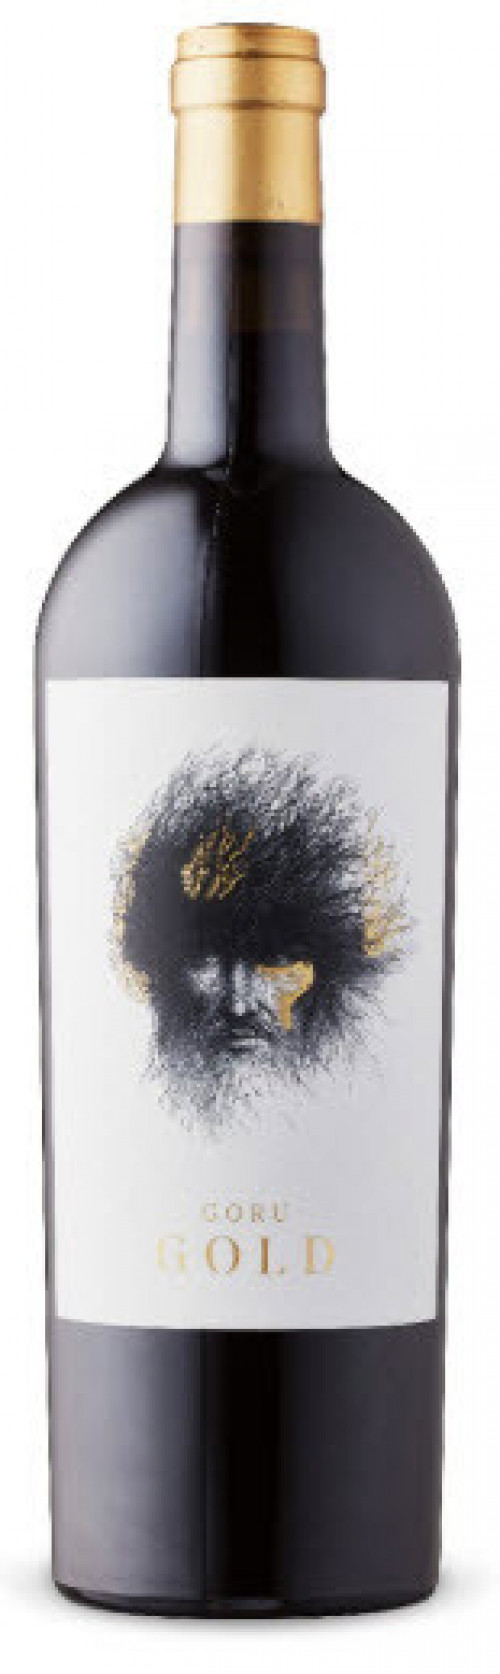 2017 Ego Bodegas Goru Gold Red Blend 750ml